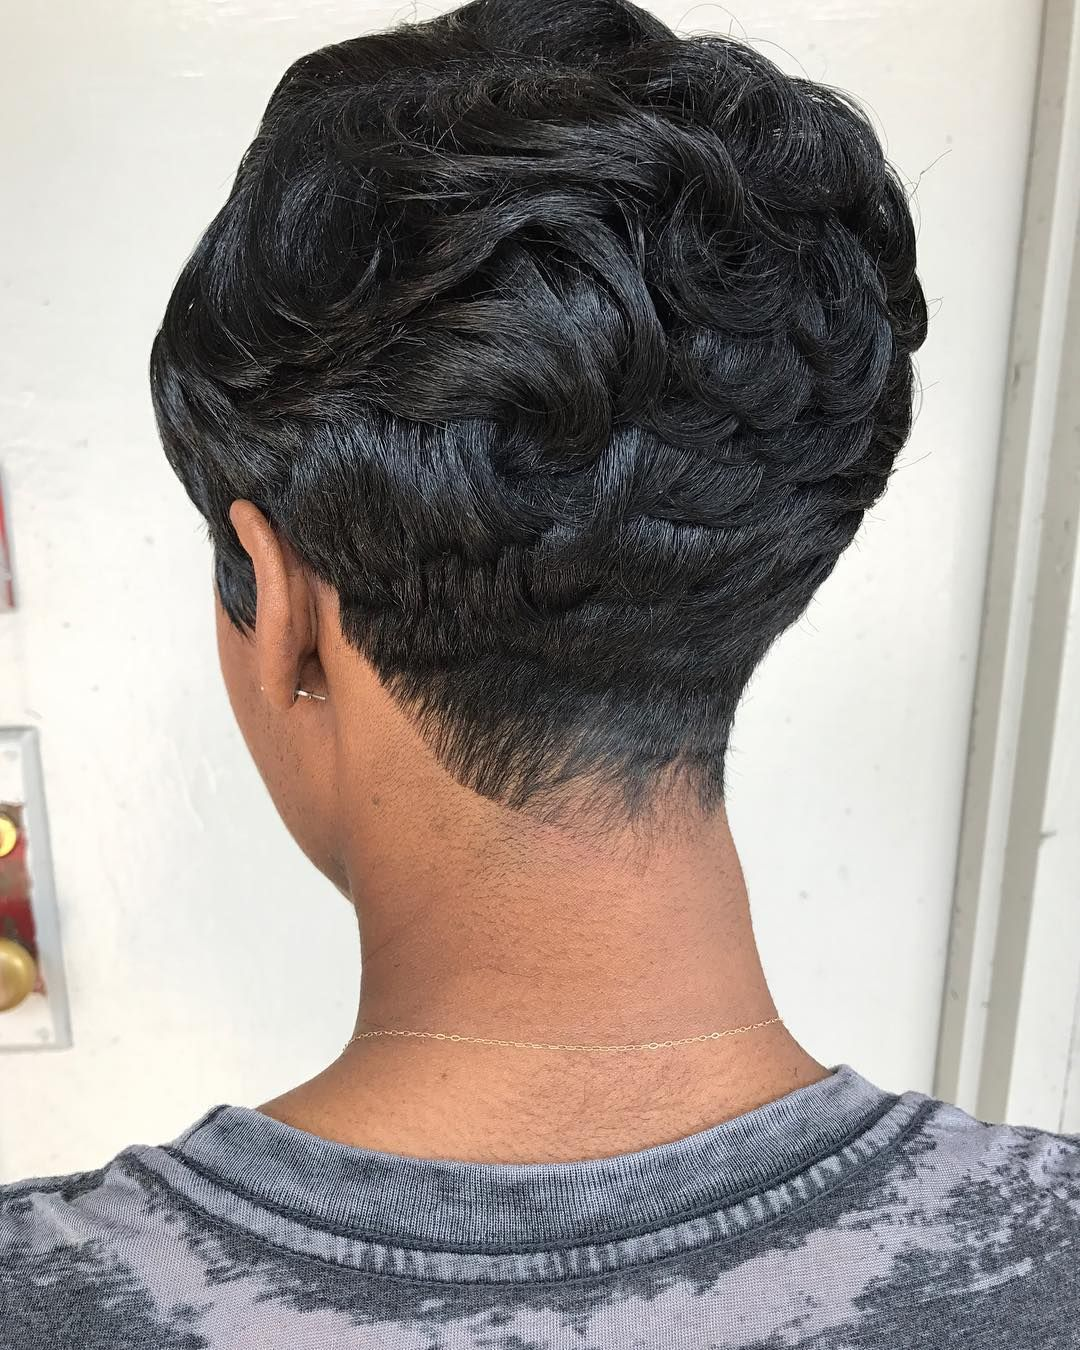 Pin by fafa smith on Idées de coiffures  Pinterest  Hairstylists